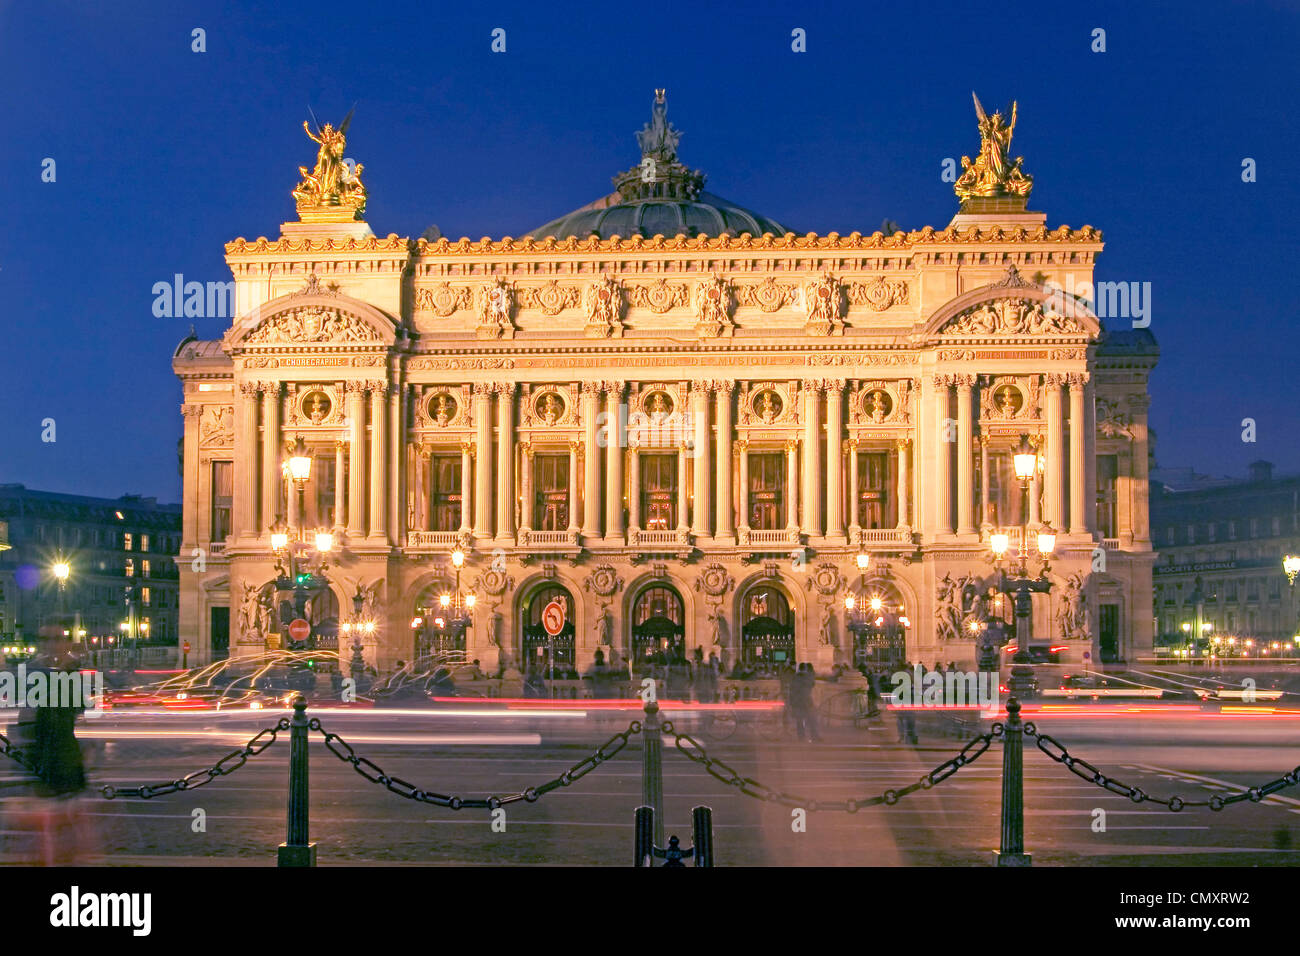 Paris, Oper Garnier nights, outback - Stock Image